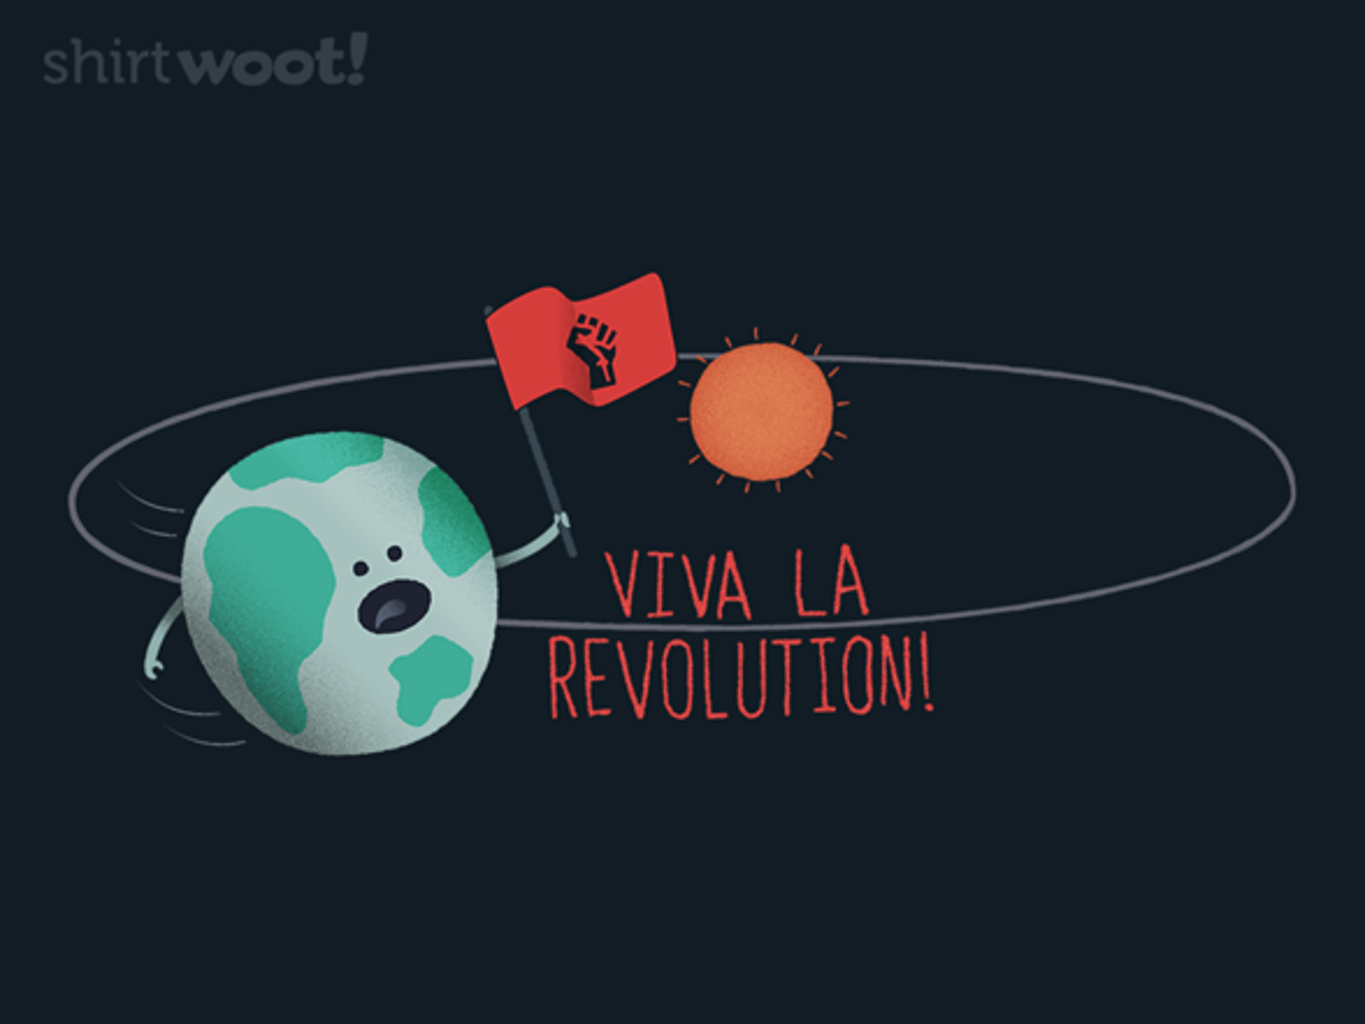 Woot!: Axis of Revolt